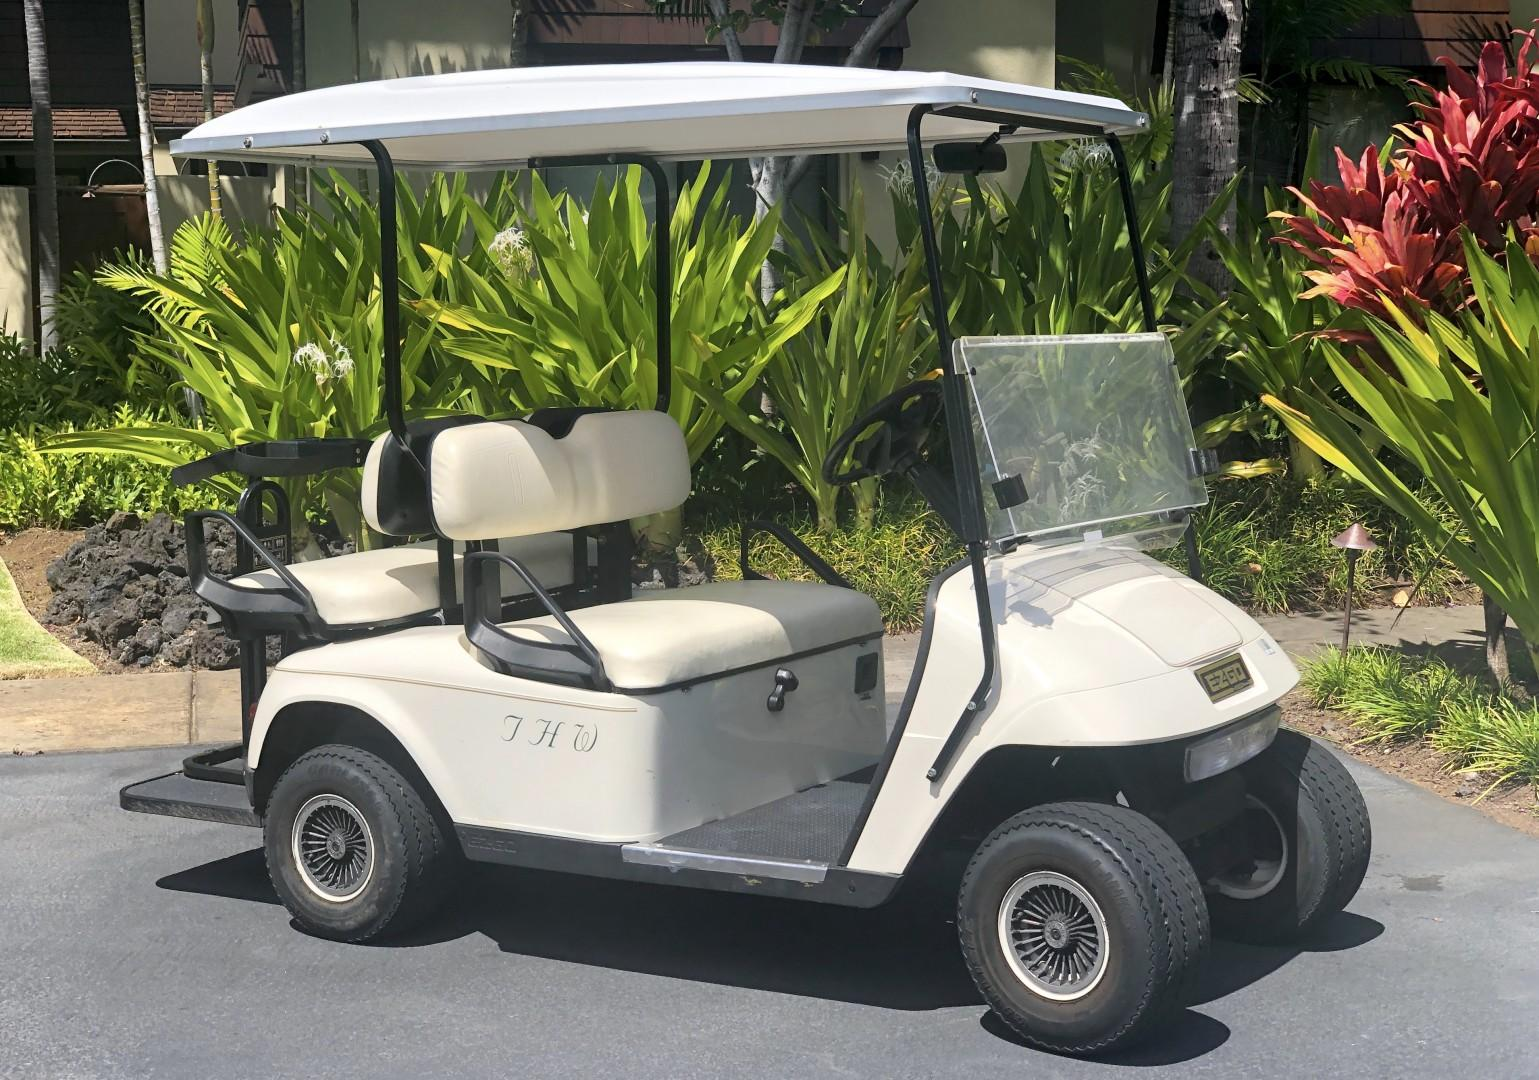 This rental comes with one golf cart!